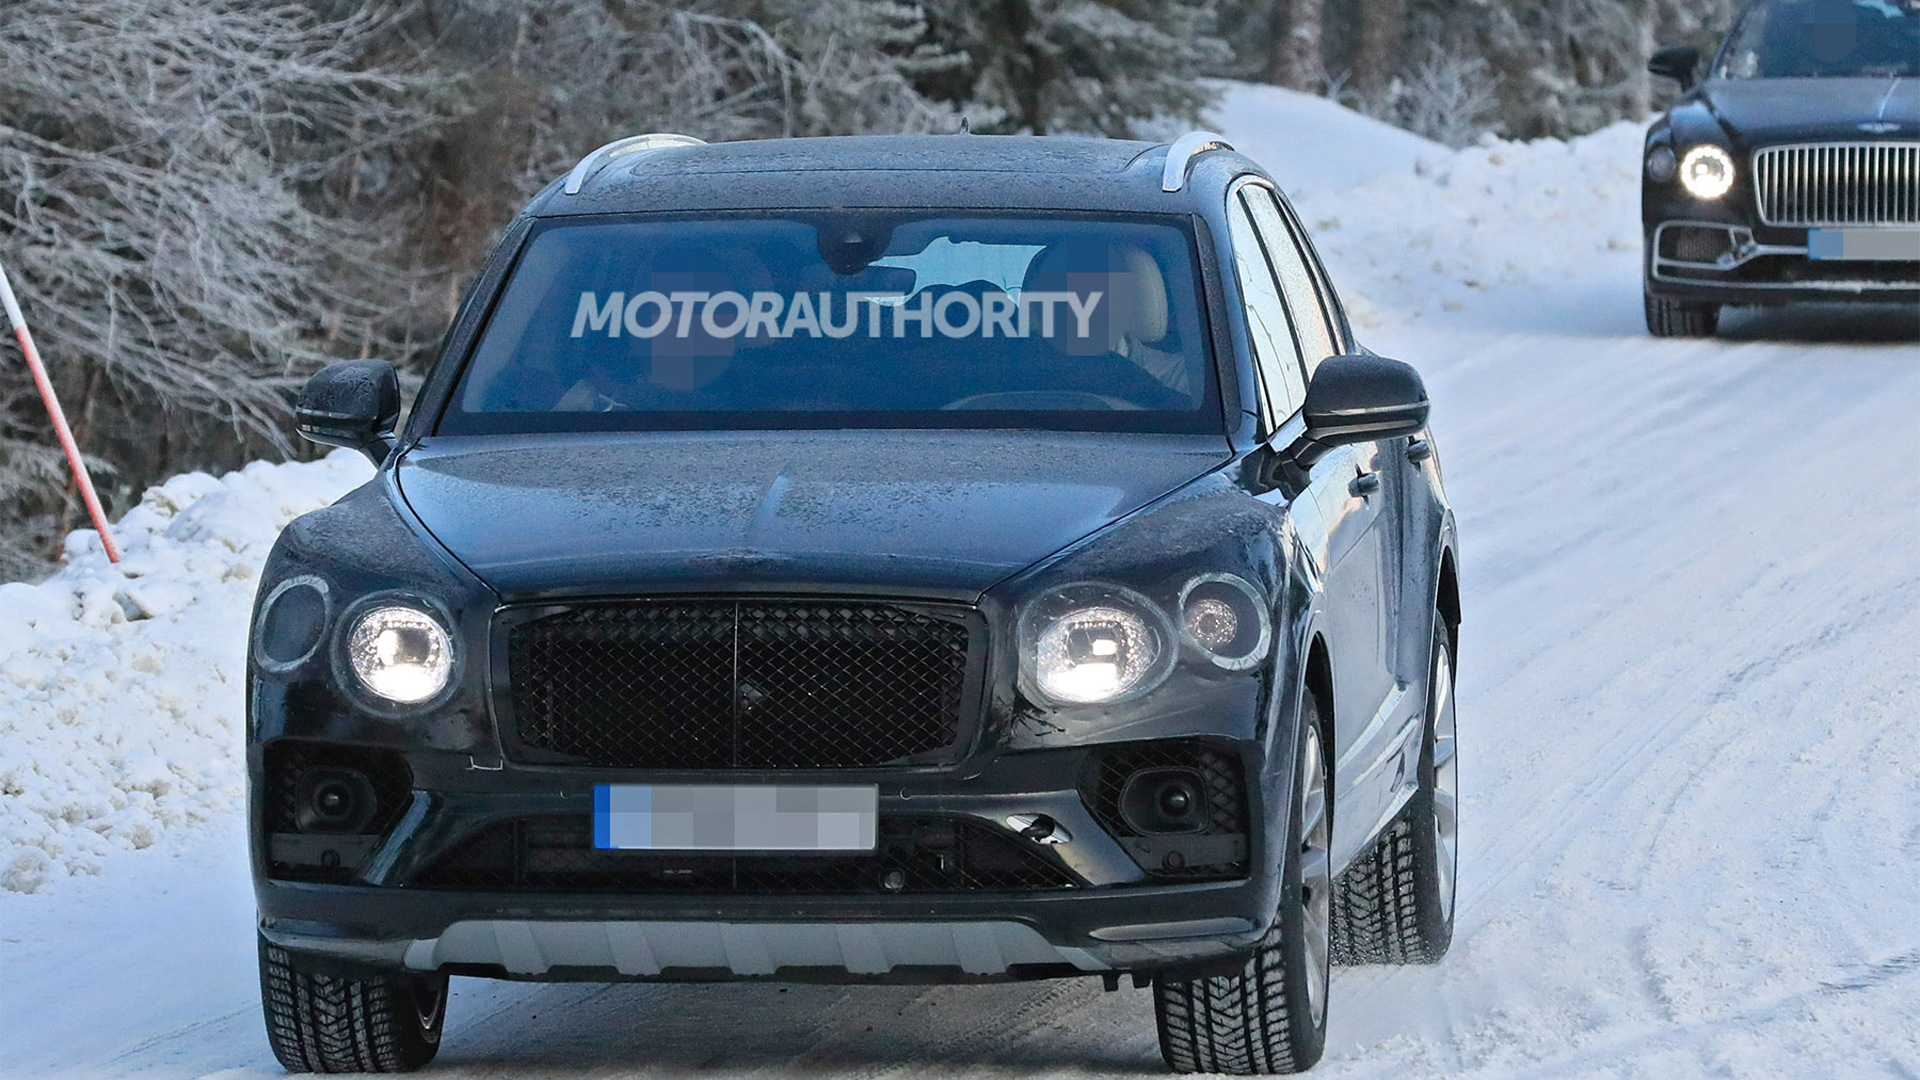 2021 Bentley Bentayga facelift spy shots - Photo credit: S. Baldauf/SB-Medien